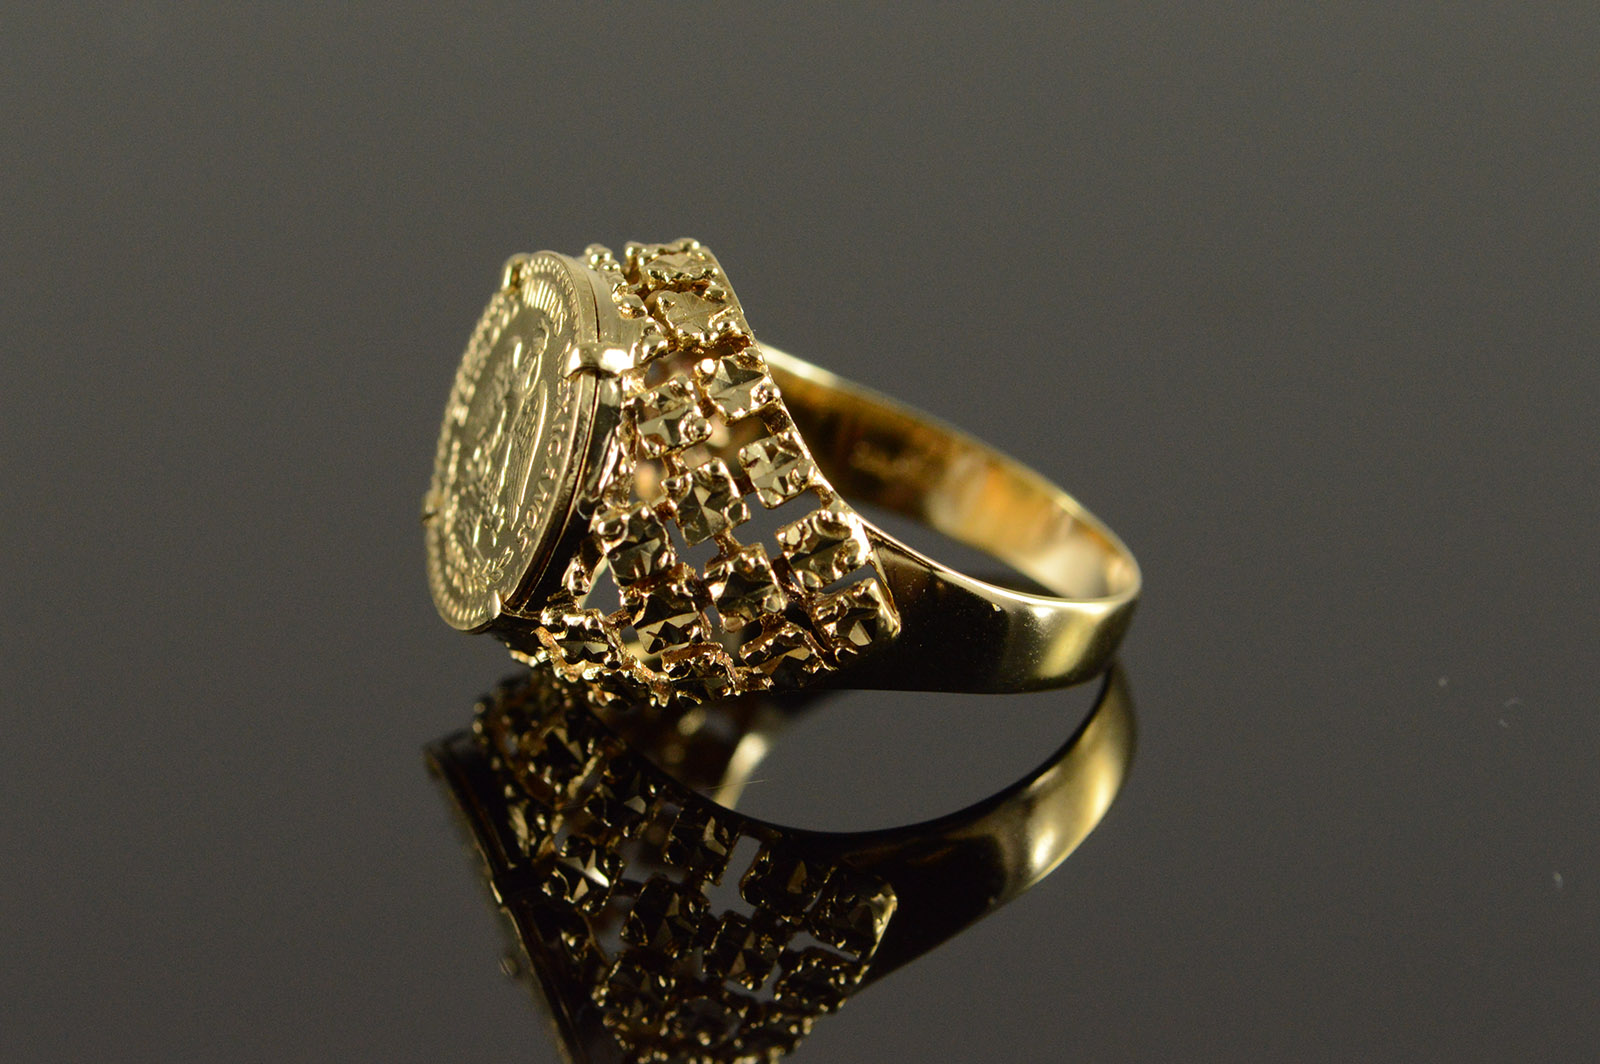 14k 4 6g 1915 Mexican 2 Peso Yellow Gold Ring Size 6 75